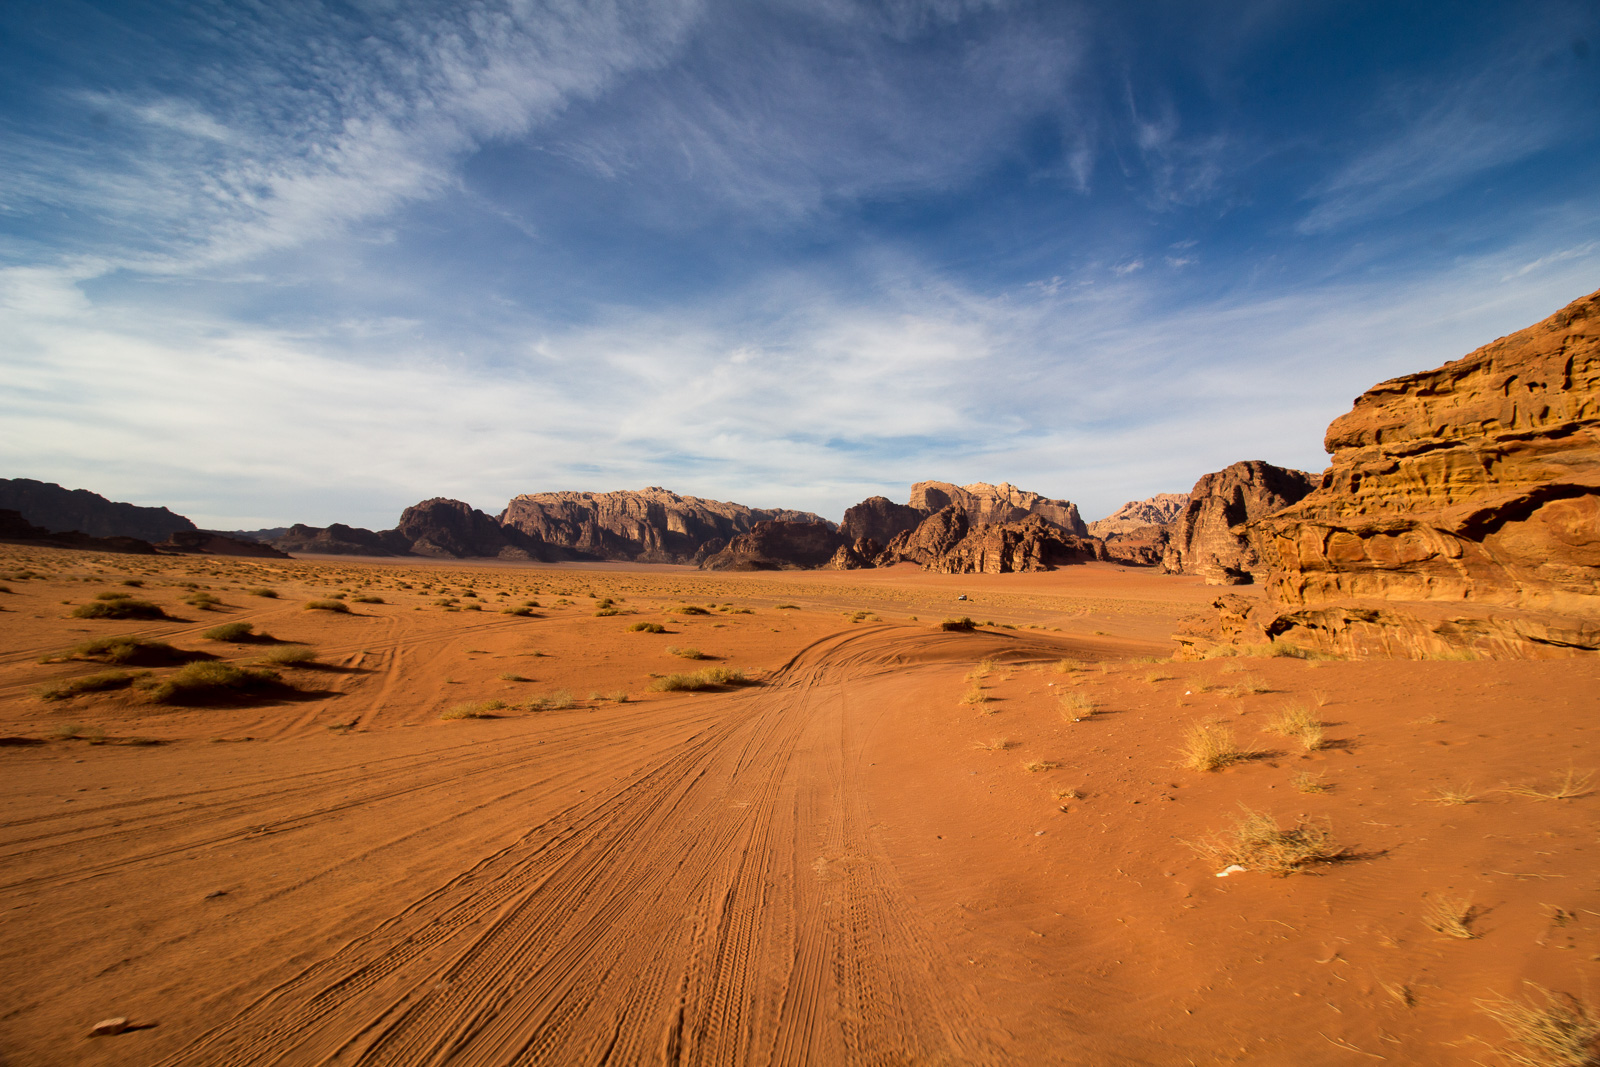 A wide view of the Mars-like terrain of Wadi Rum. So Mars-like that it's where they shot The Martian. Tire tracks follow behind.